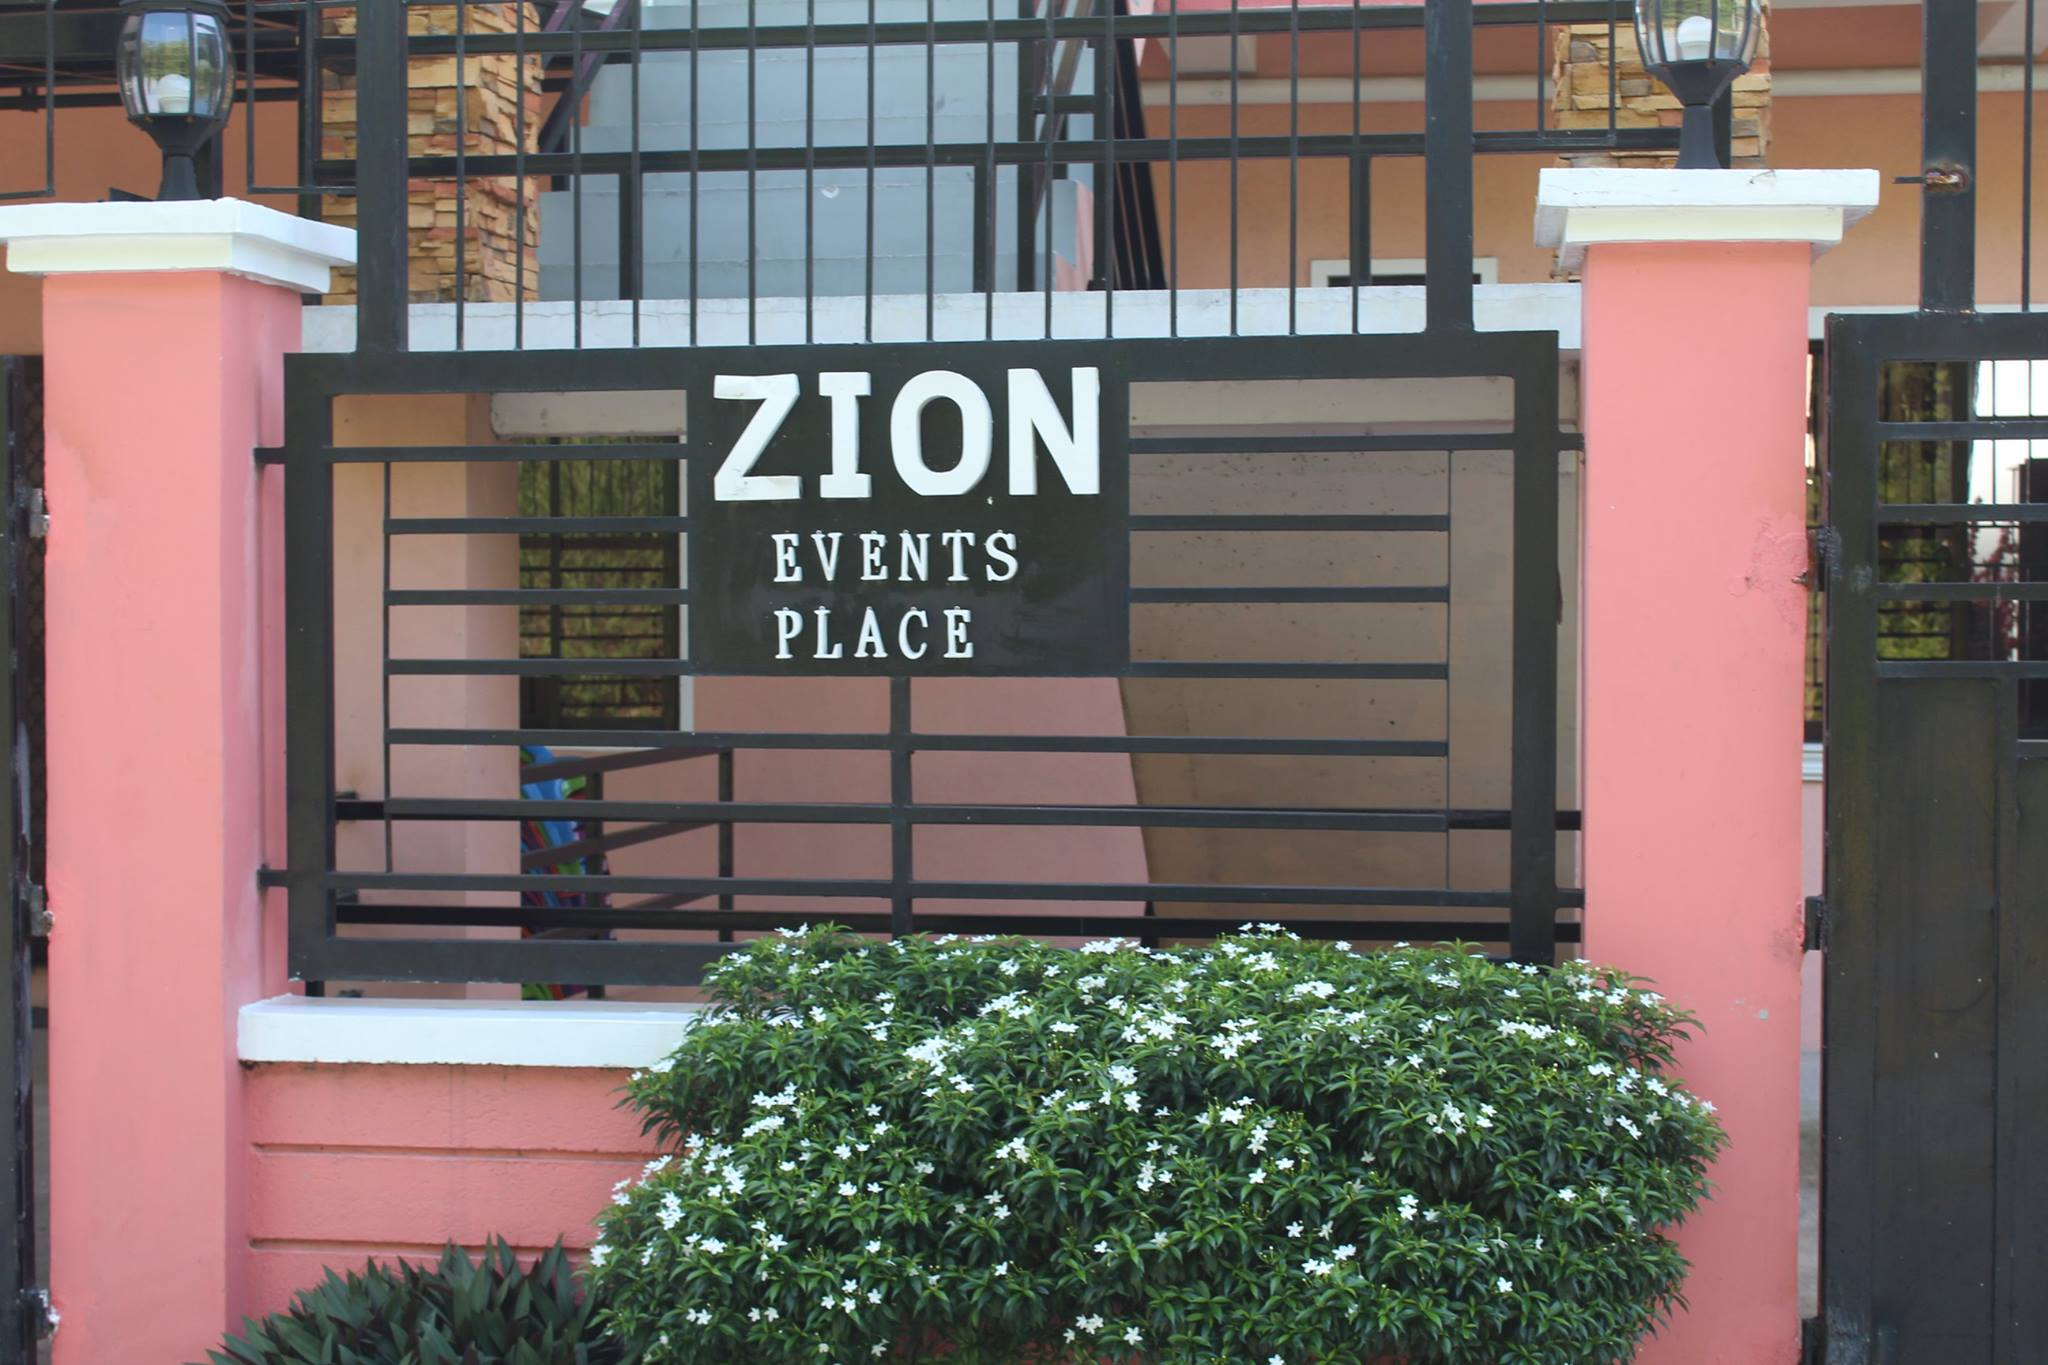 Zion Events Place